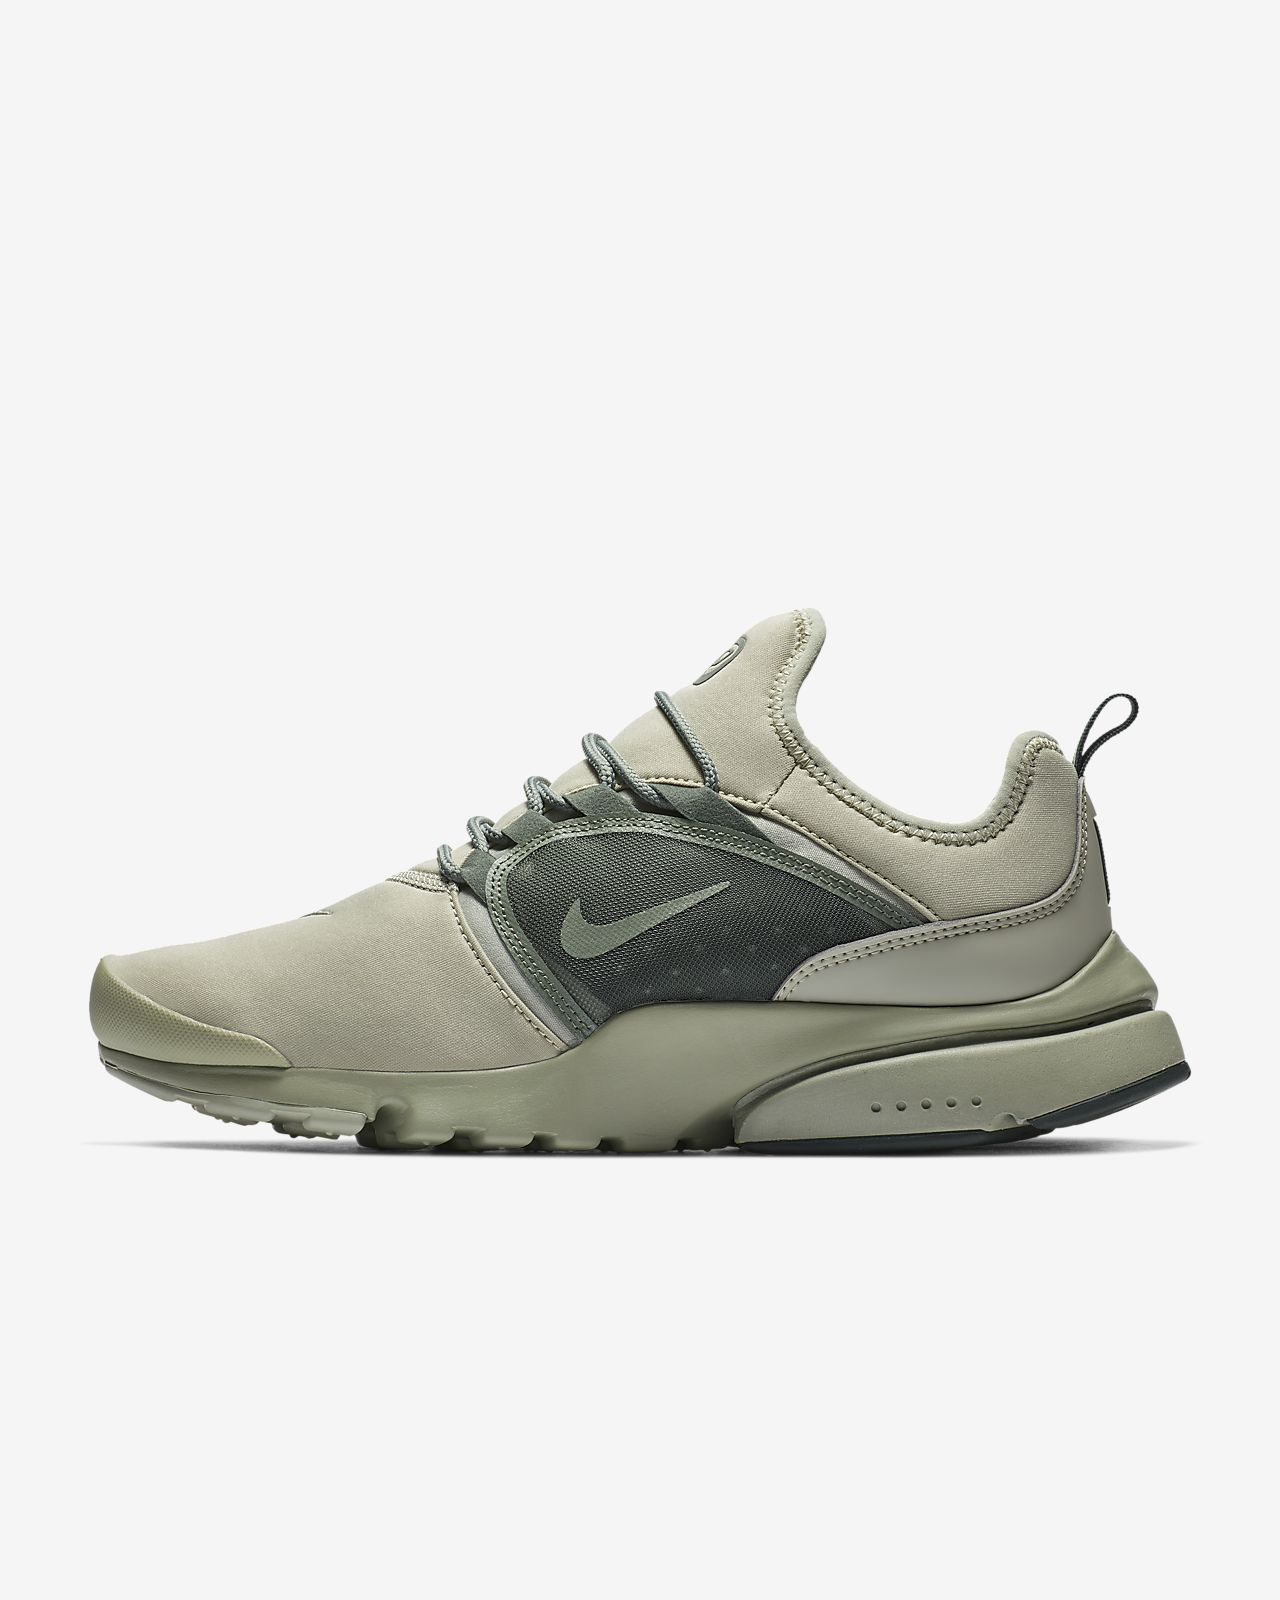 bb8455573fa3 Chaussure Nike Presto Fly World pour Homme. Nike.com CA